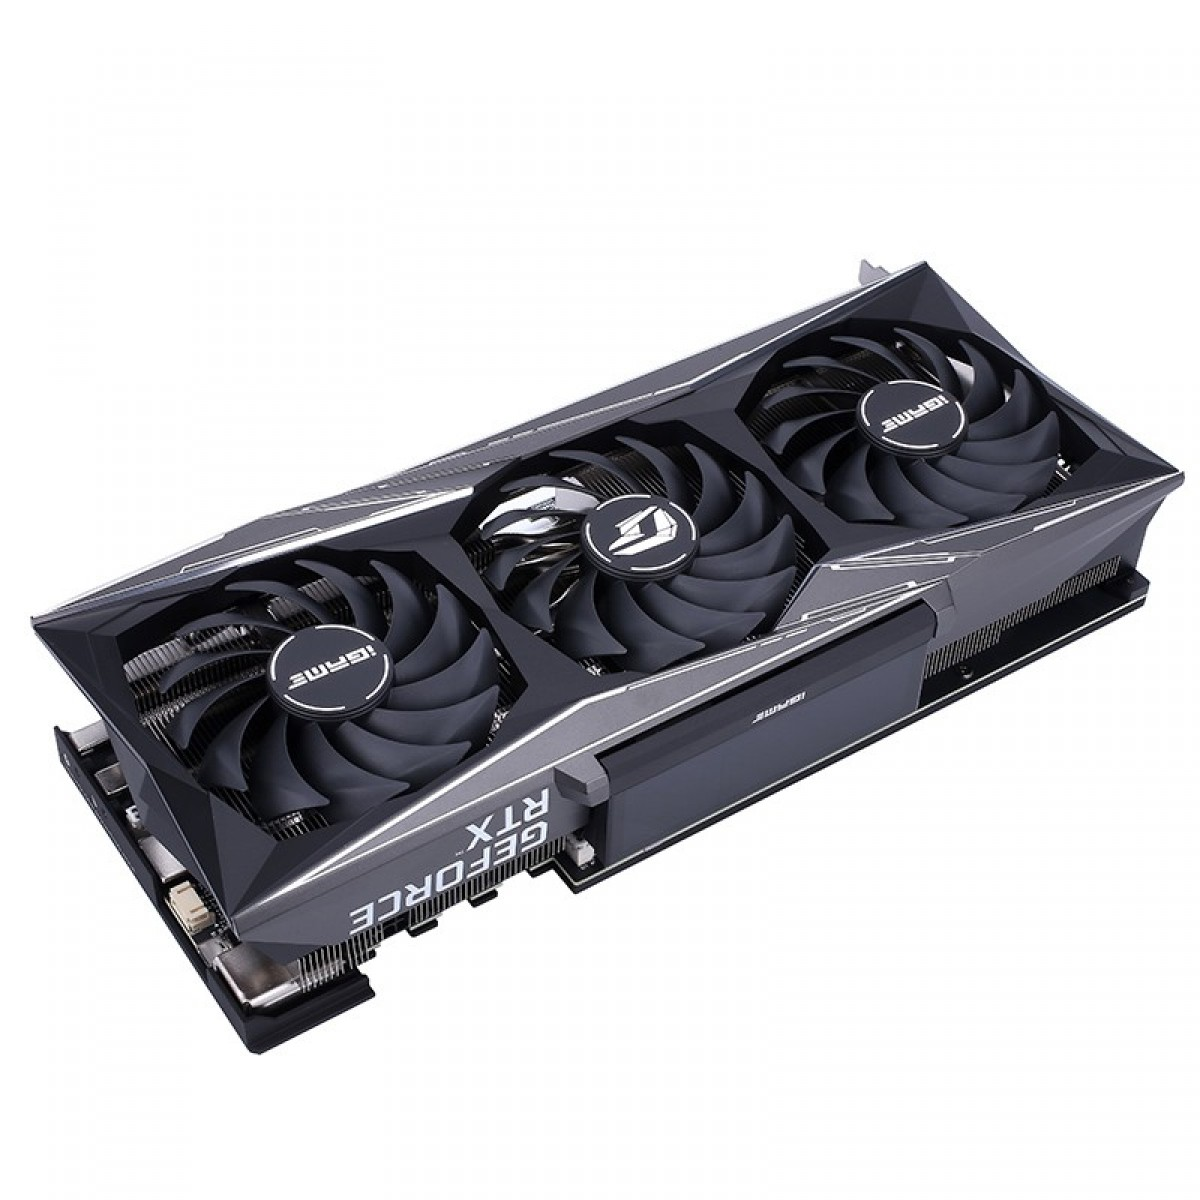 Placa de Vídeo Colorful, GeForce, iGame RTX 3080 Vulcan 10G-V, Com Tela LCD, 10GB, GDDR6X, 320Bit,